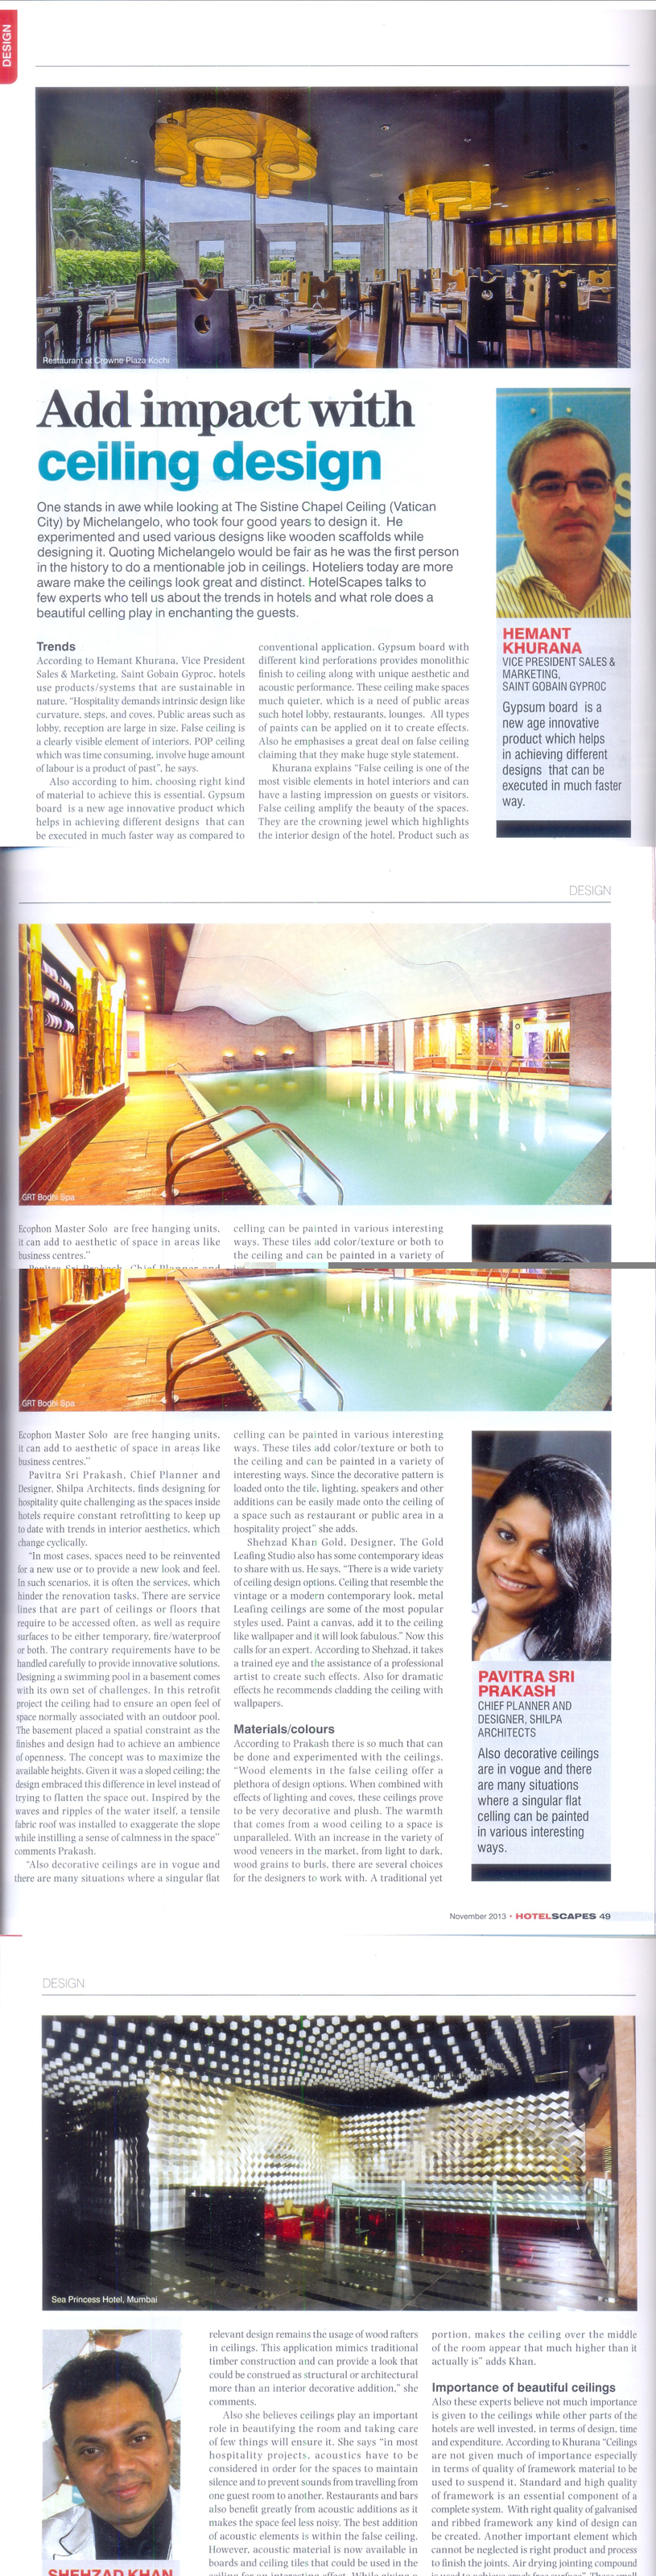 HotelScapes magazine Nov 2013 with Pavitra Sriprakash